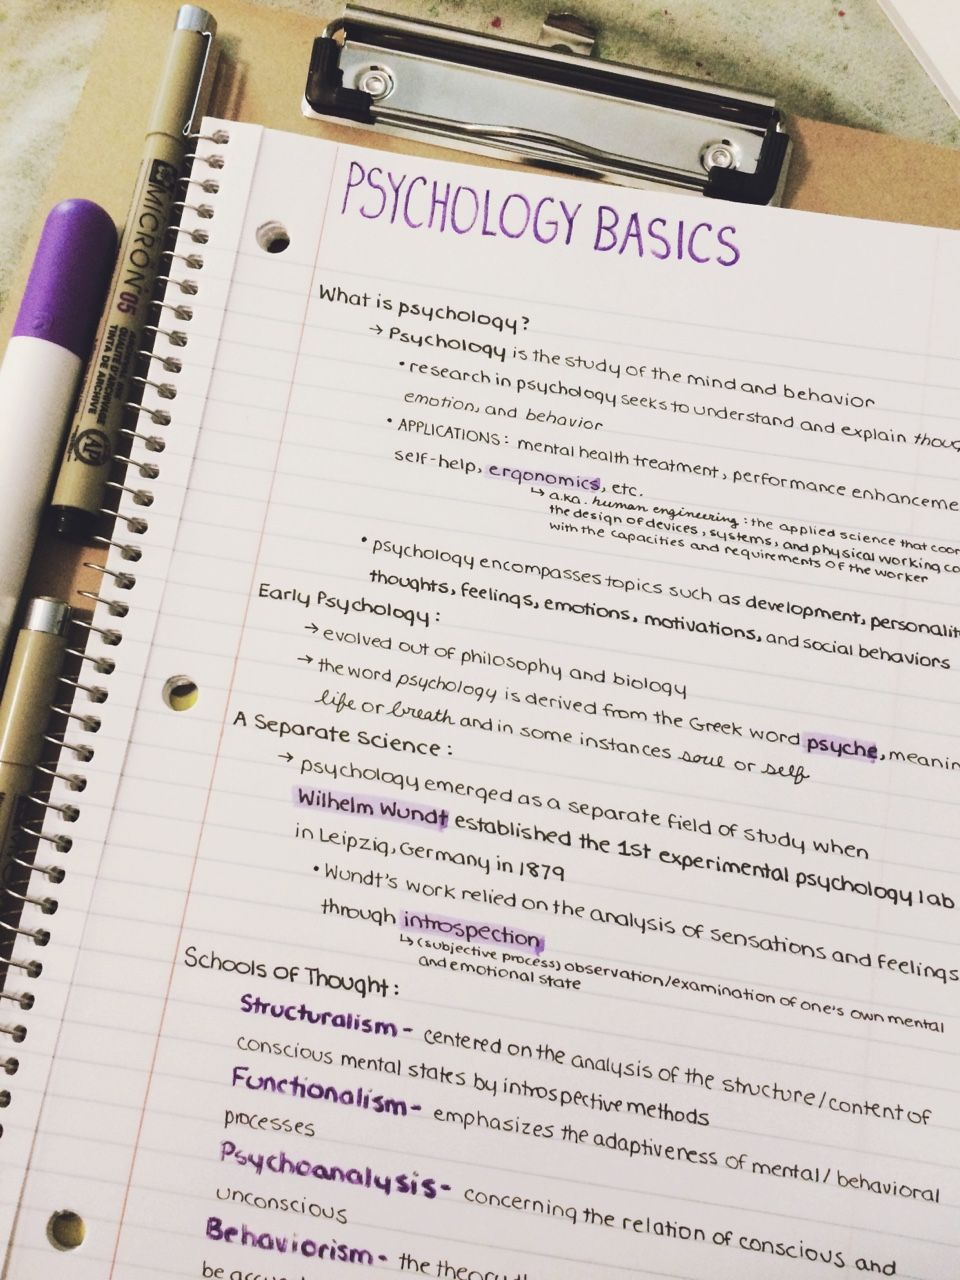 educational psychology notes Need help with educational psychology studysoup has hundreds of educational psychology notes, flashcards, study guides, practice exams and more.